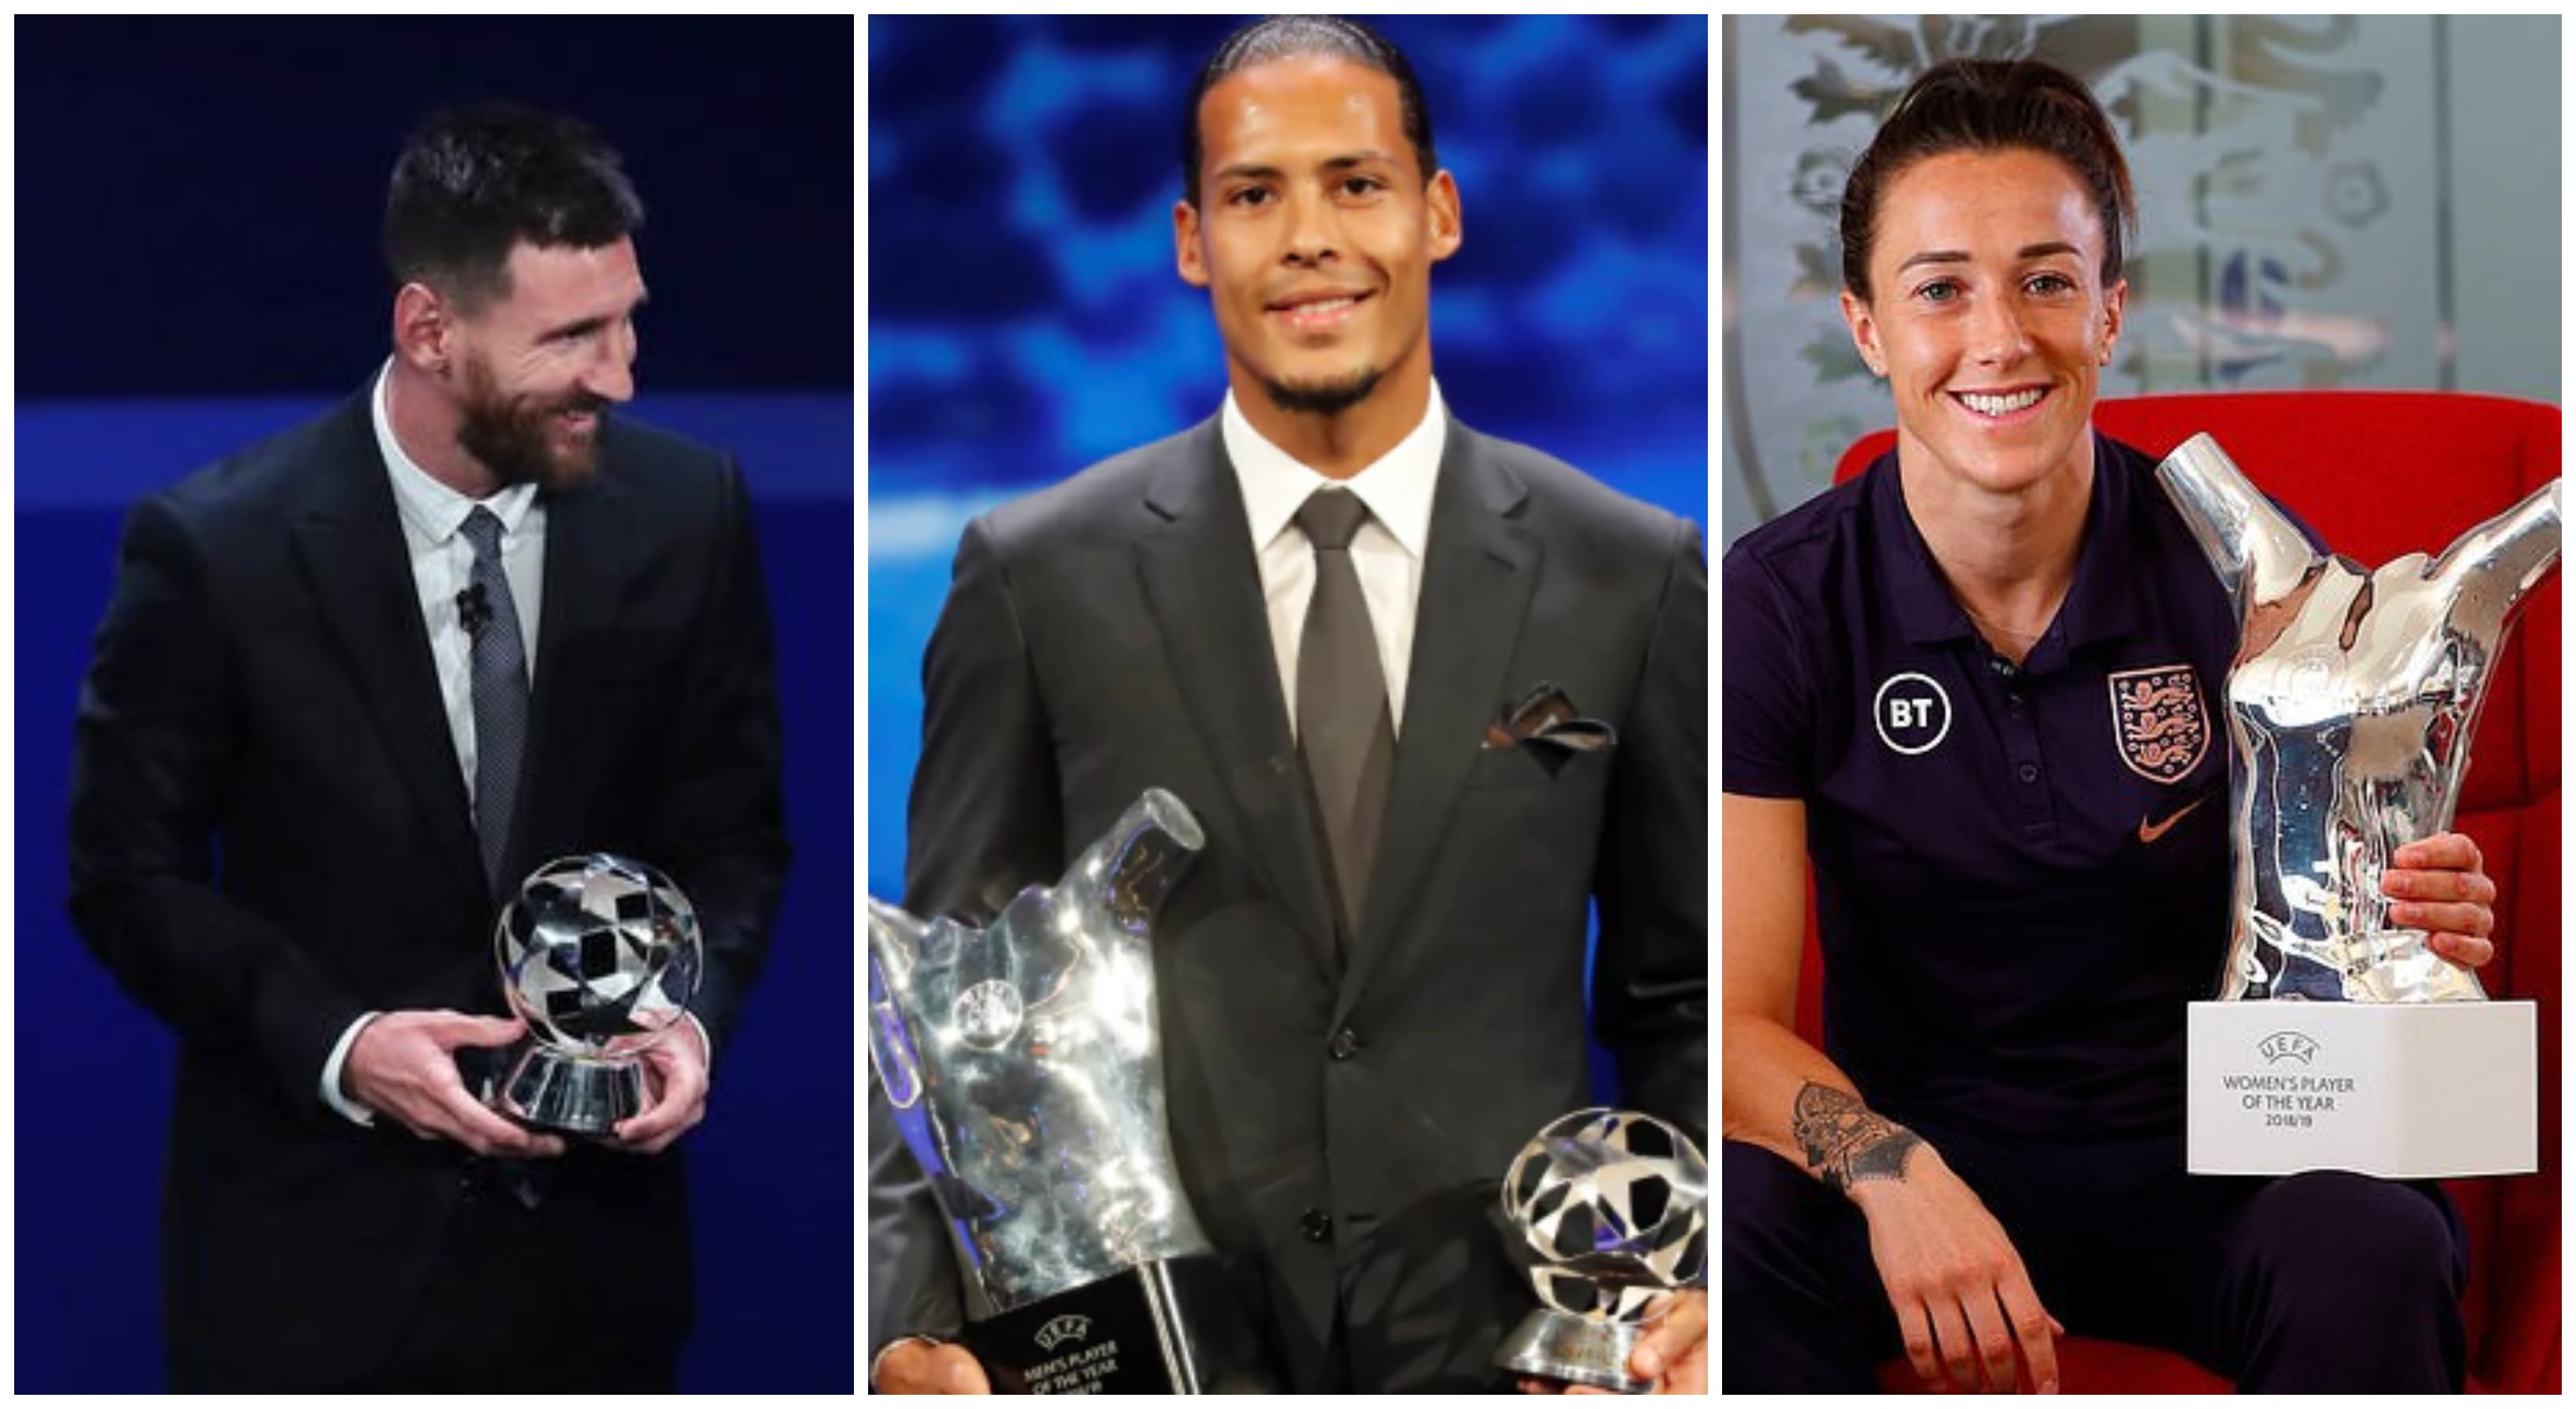 UEFA Award Winners for 2018/19 Season – Virgil Van Dijk, Lionel Messi, Lucy Bronze take the Spotlight